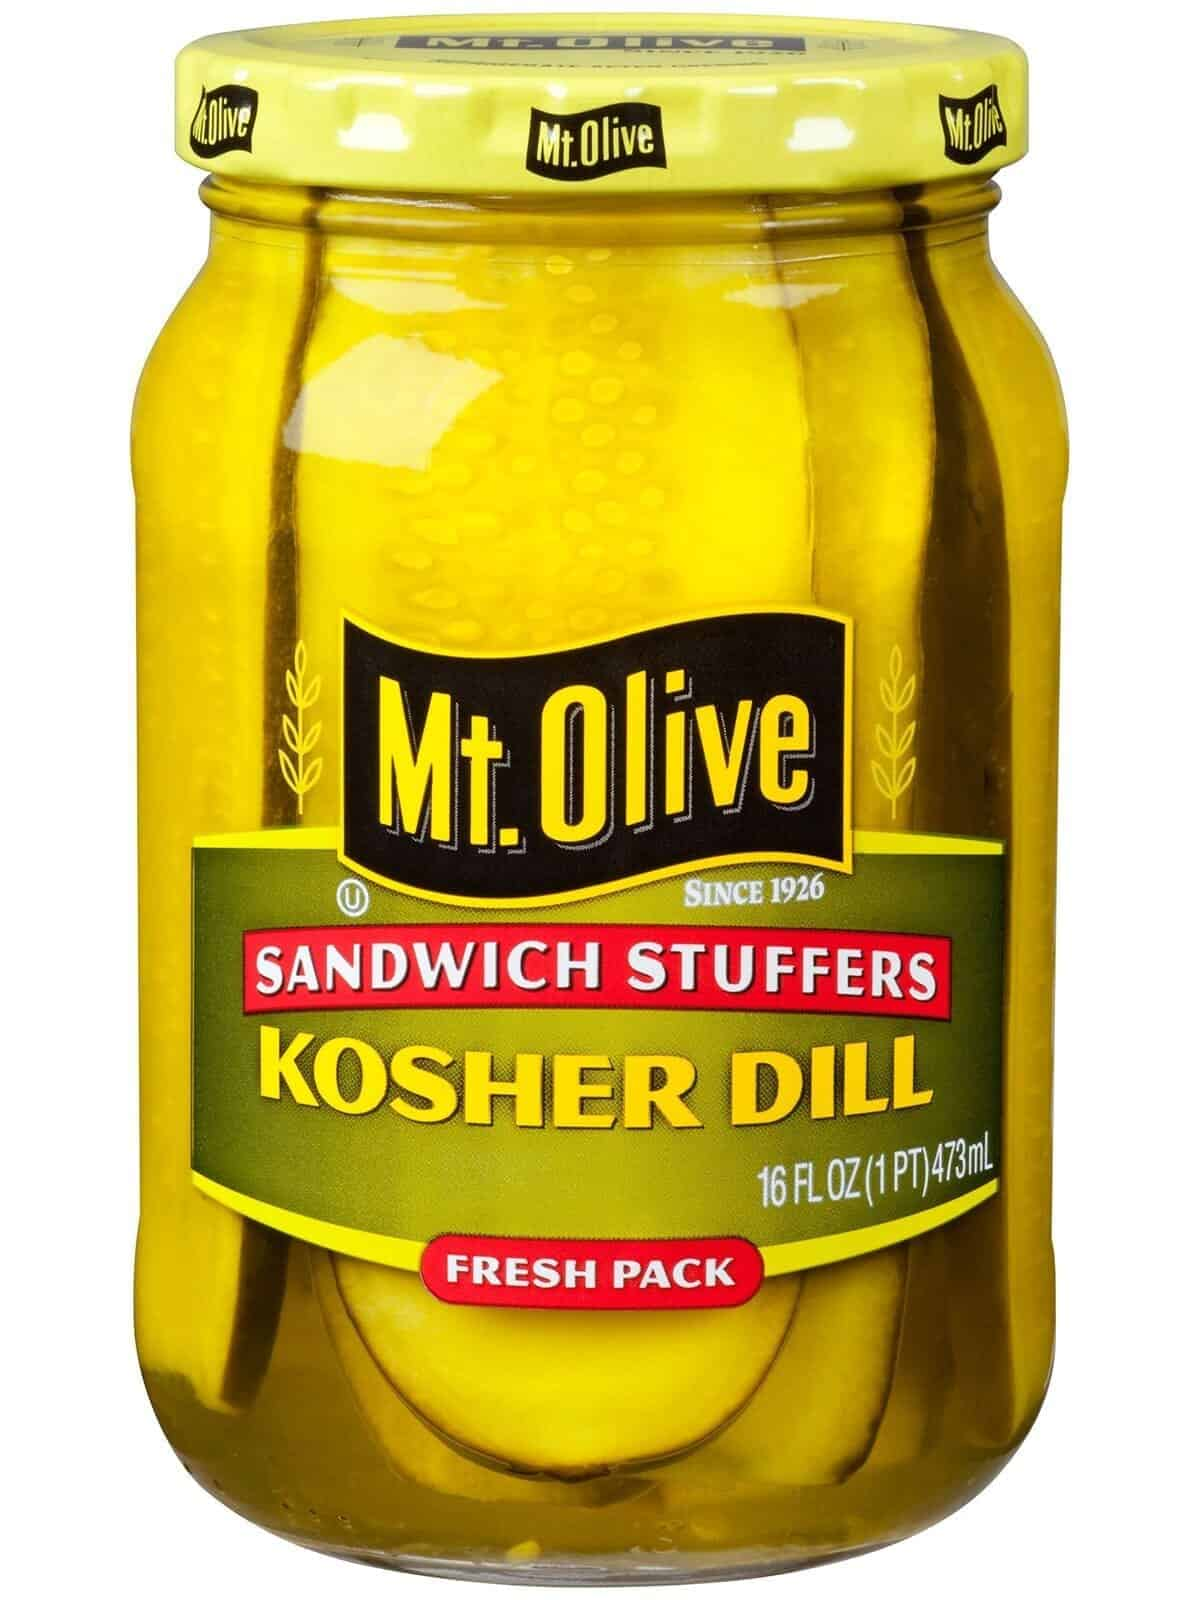 Kosher Dill Sandwich Stuffers